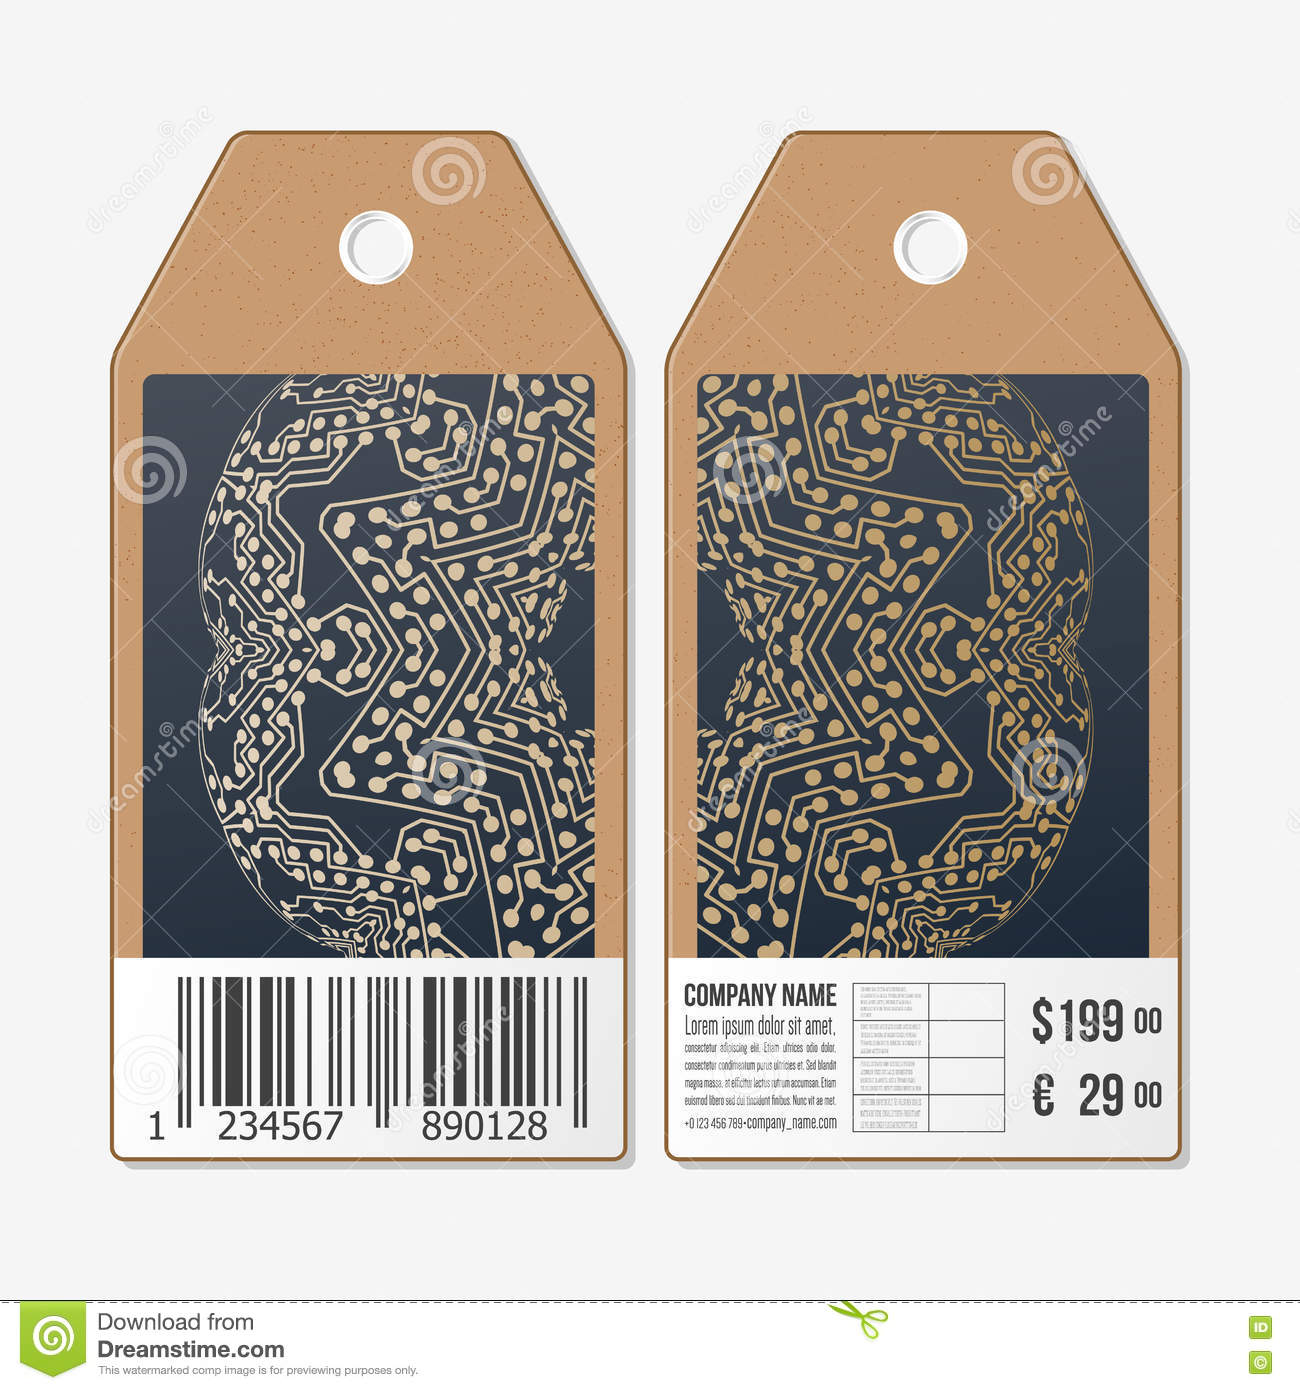 Tags Design On Both Sides Cardboard Sale Labels With Barcode Golden Microchip Pattern